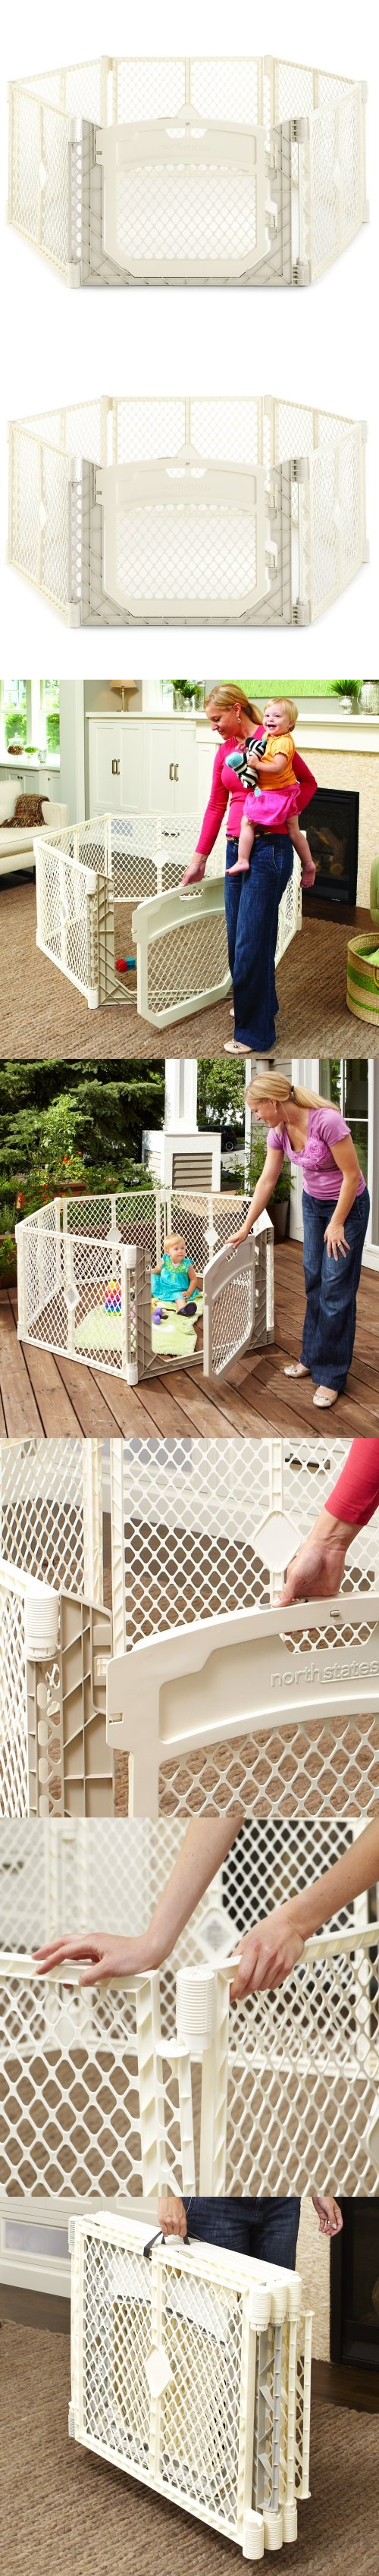 Baby Play Area 11 Best Baby Play Area Images On Pinterest Baby Gates Daycare